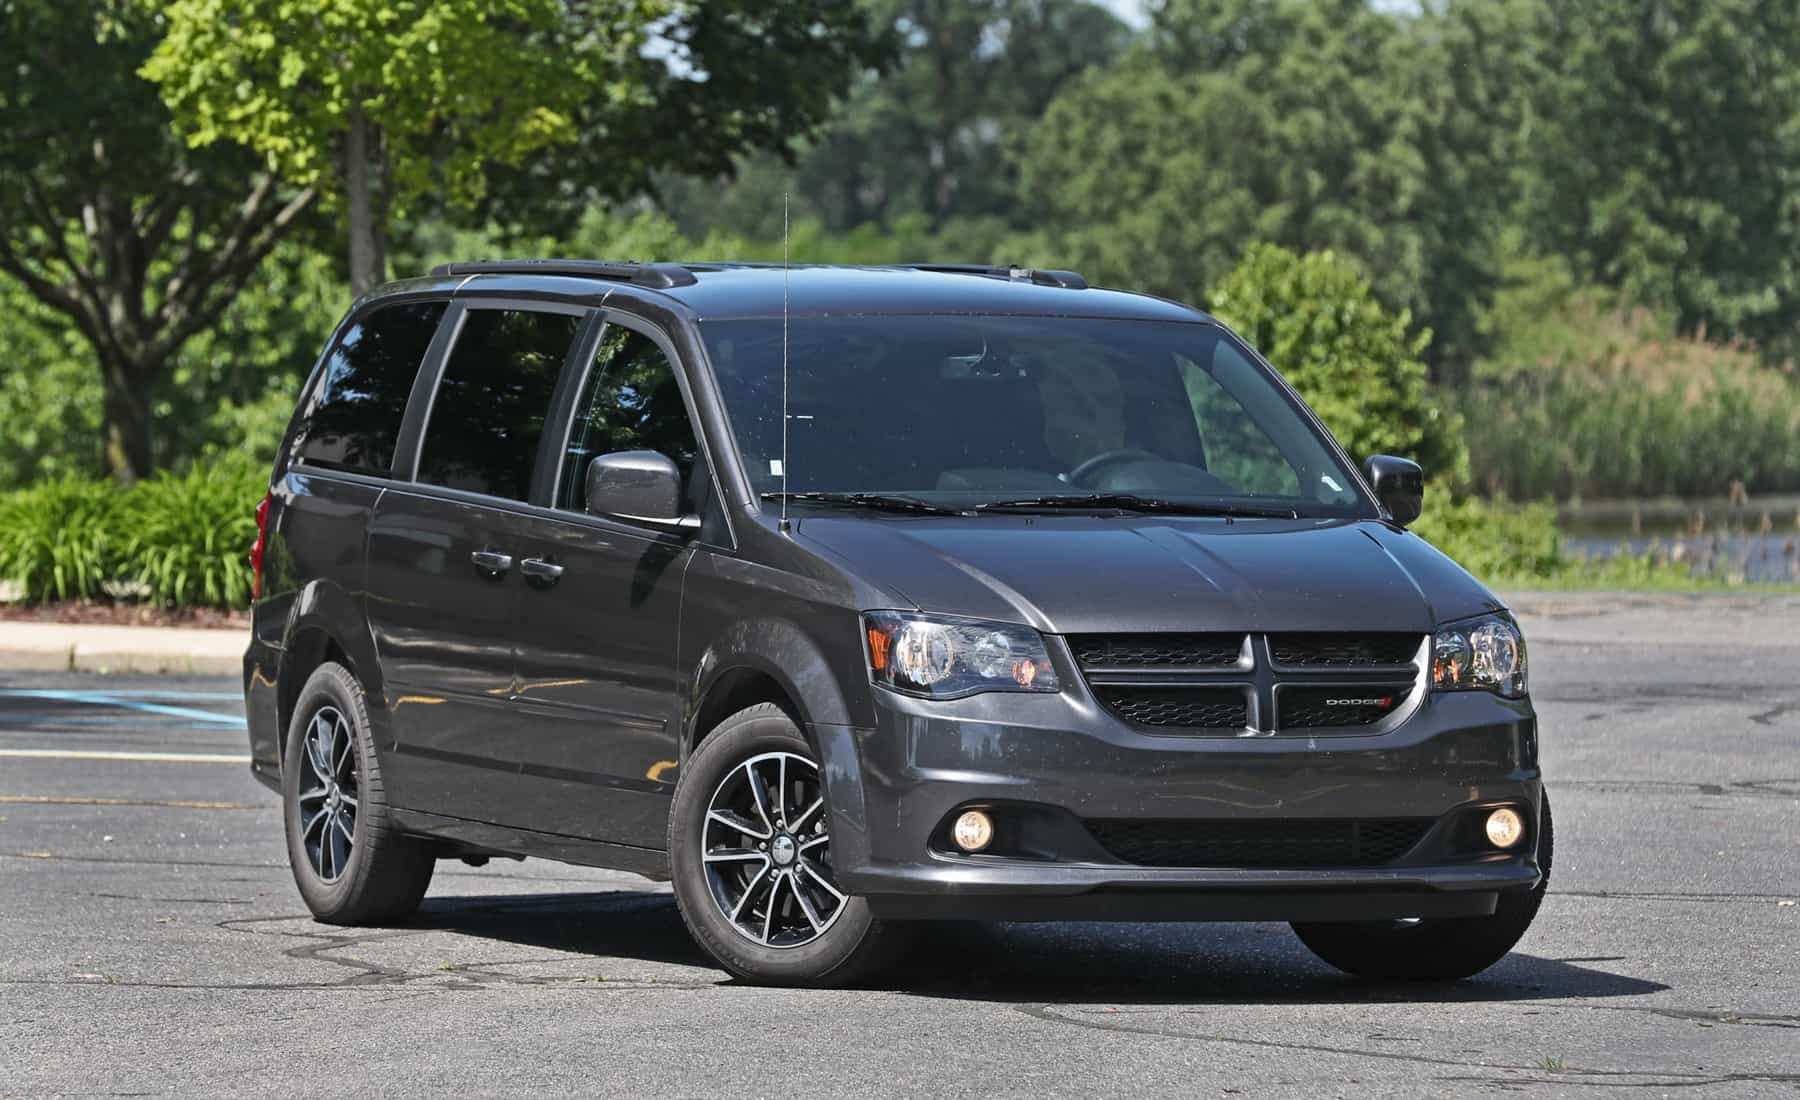 2017 Dodge Grand Caravan Exterior Front And Side (View 46 of 47)